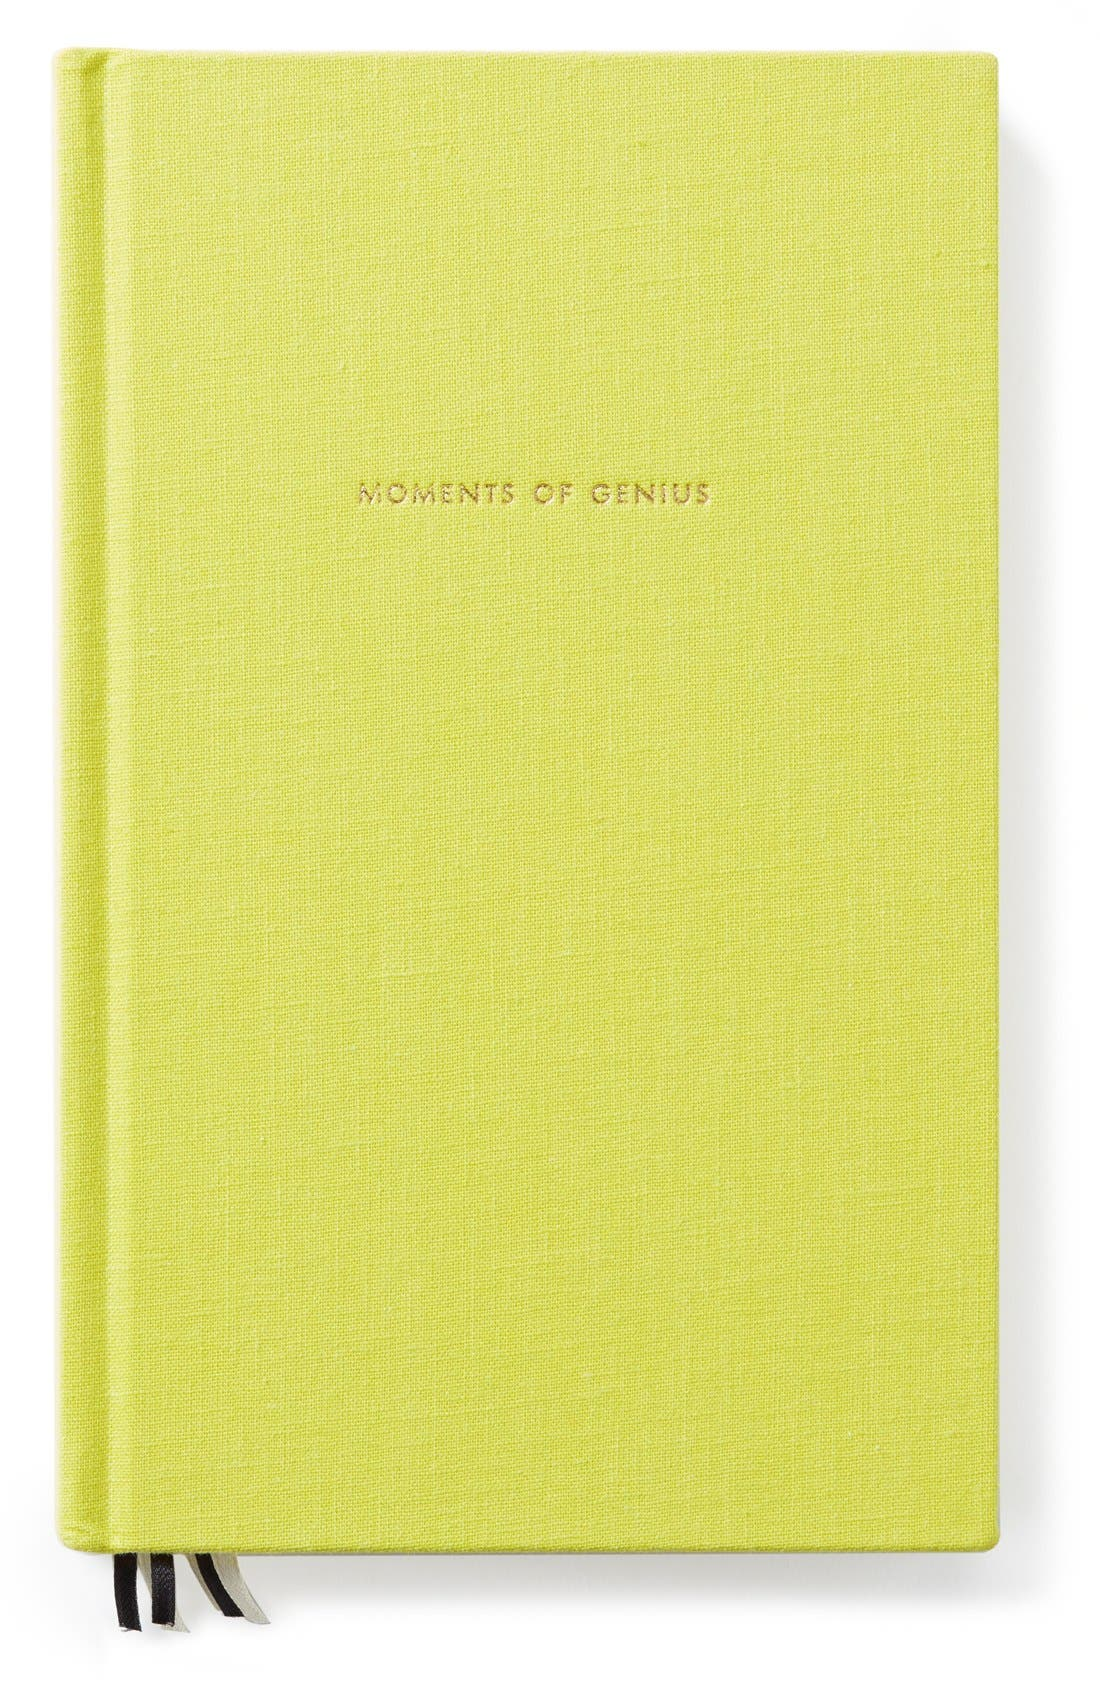 Alternate Image 1 Selected - kate spade new york 'moments of genius' journal